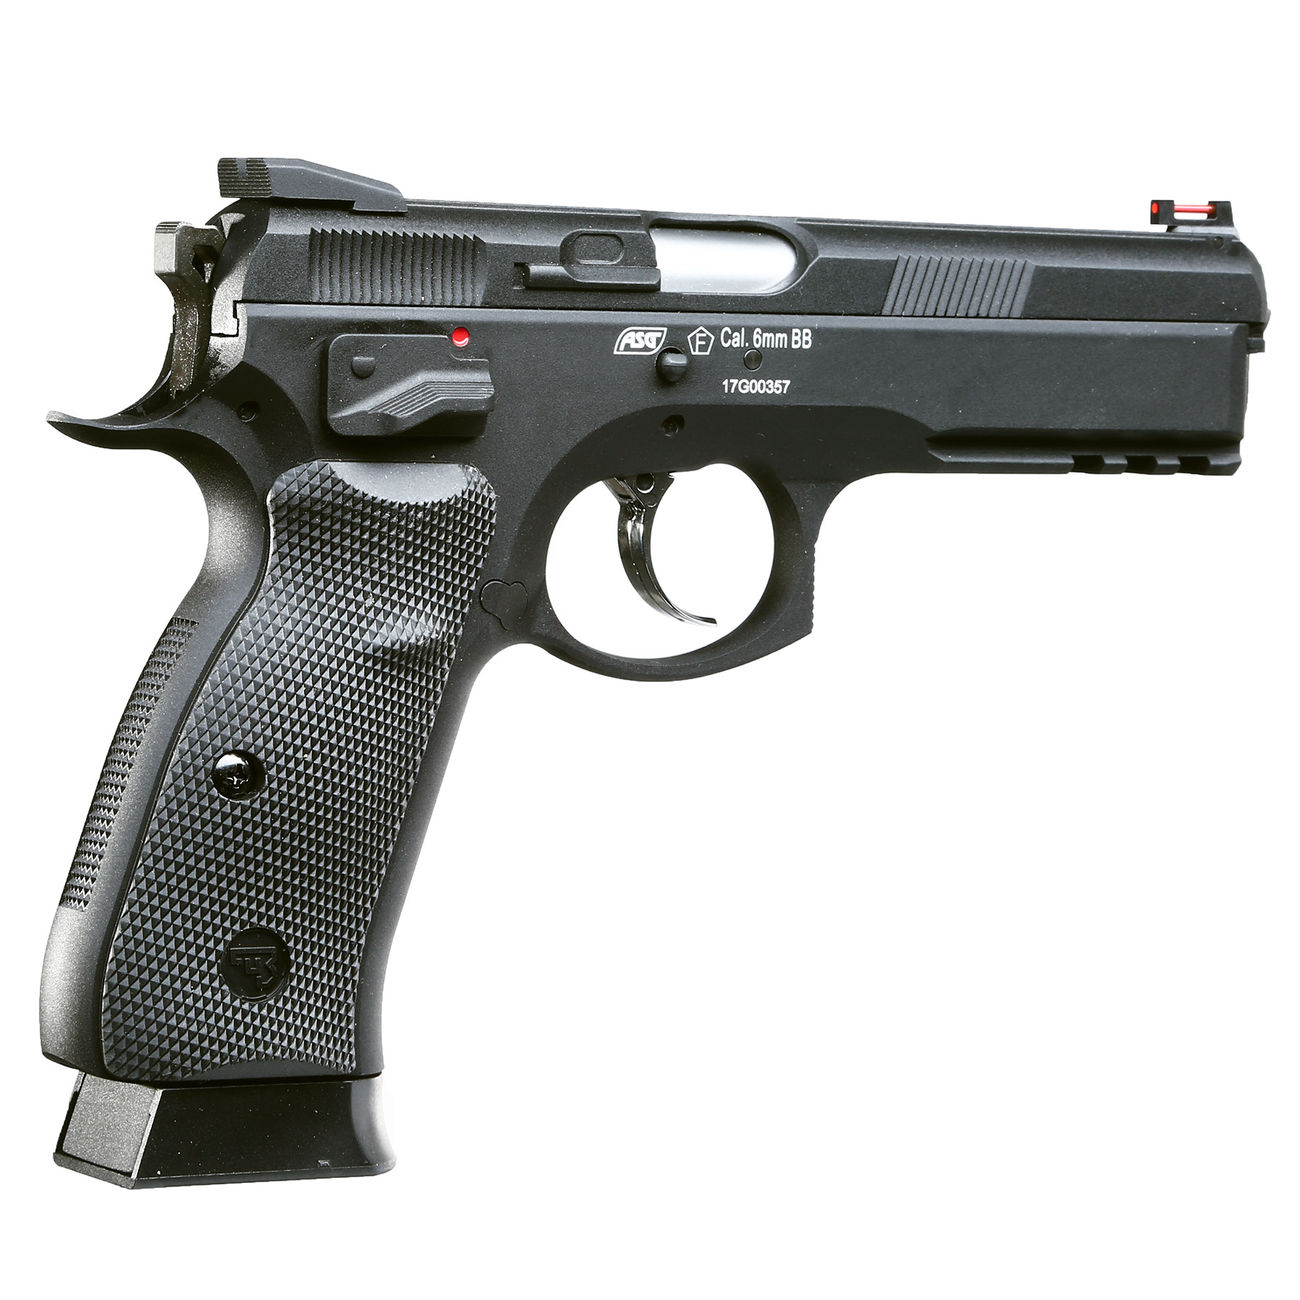 KJ Works CZ 75 SP-01 Shadow Vollmetall GBB 6mm BB schwarz 3